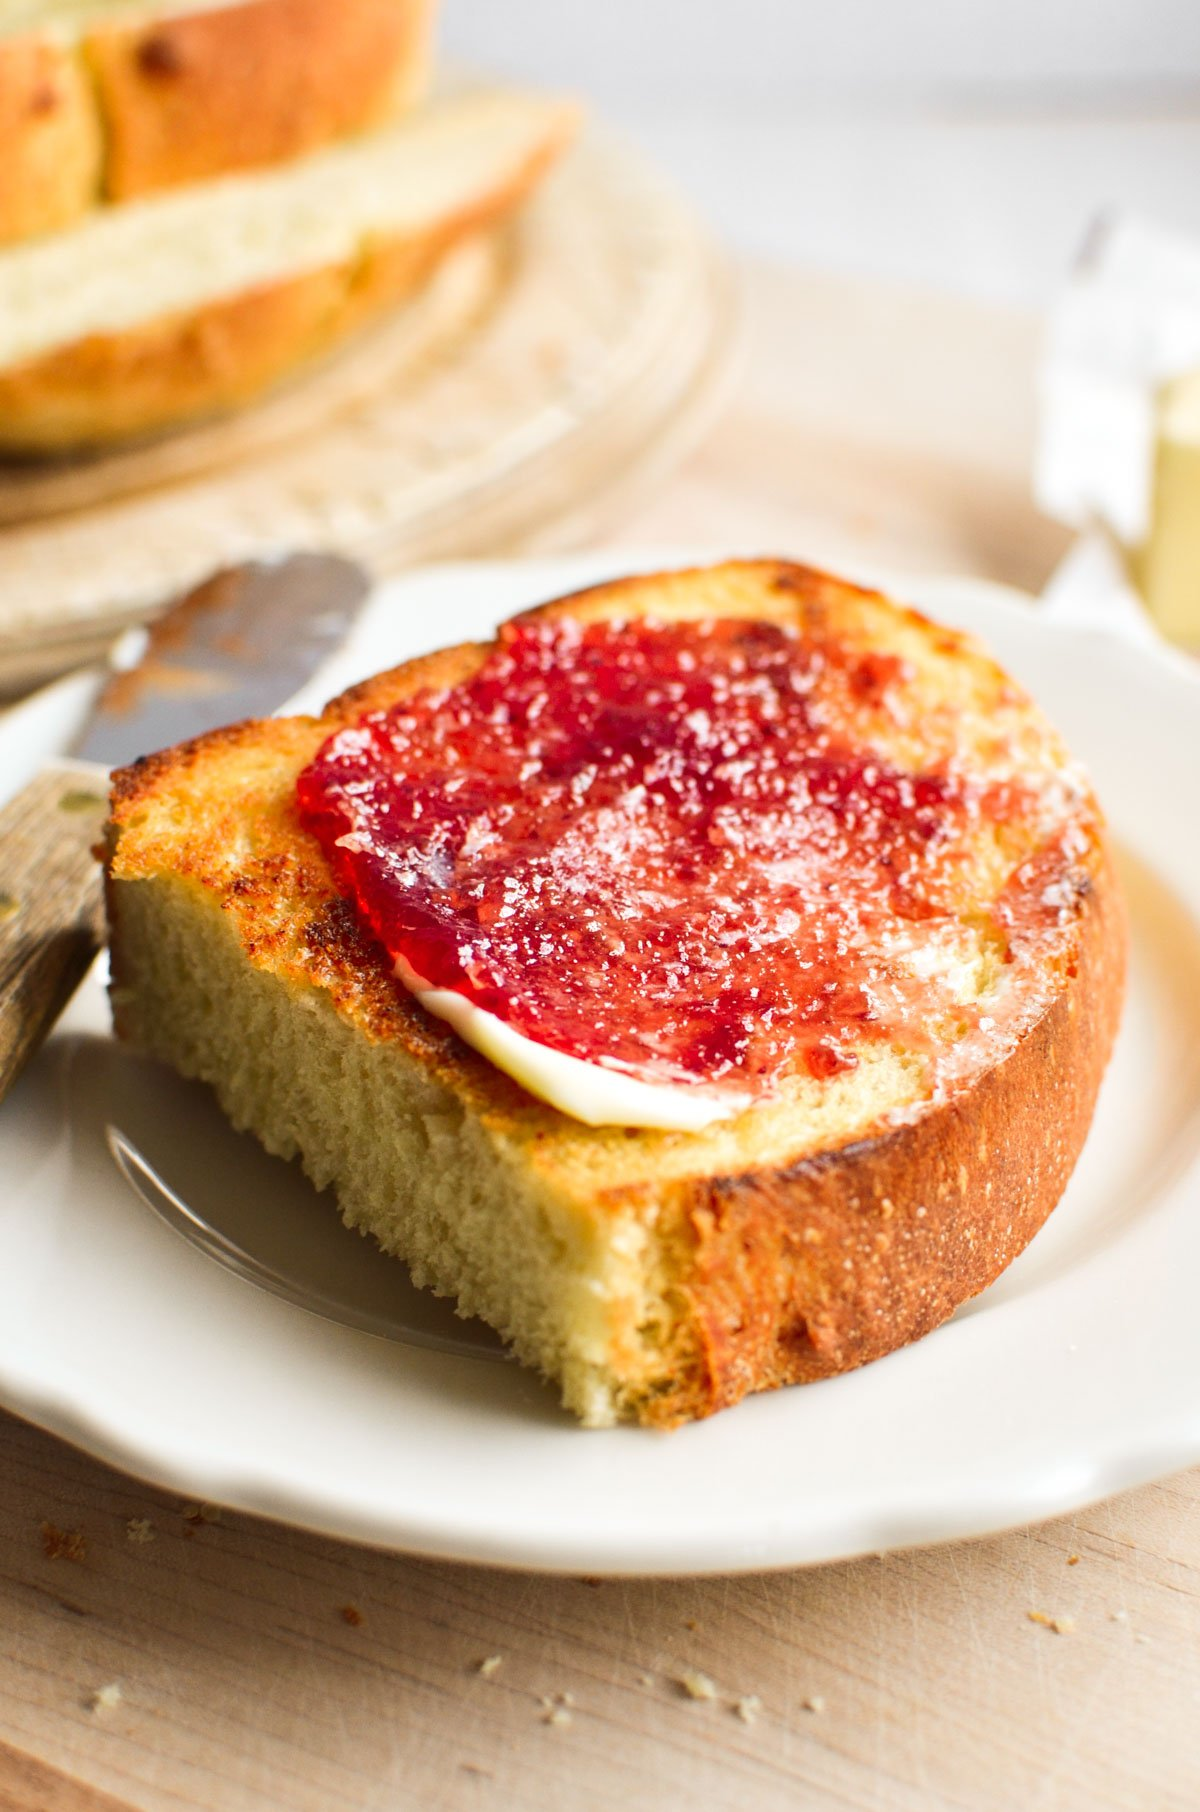 A slice of homemade bread with butter and jam.